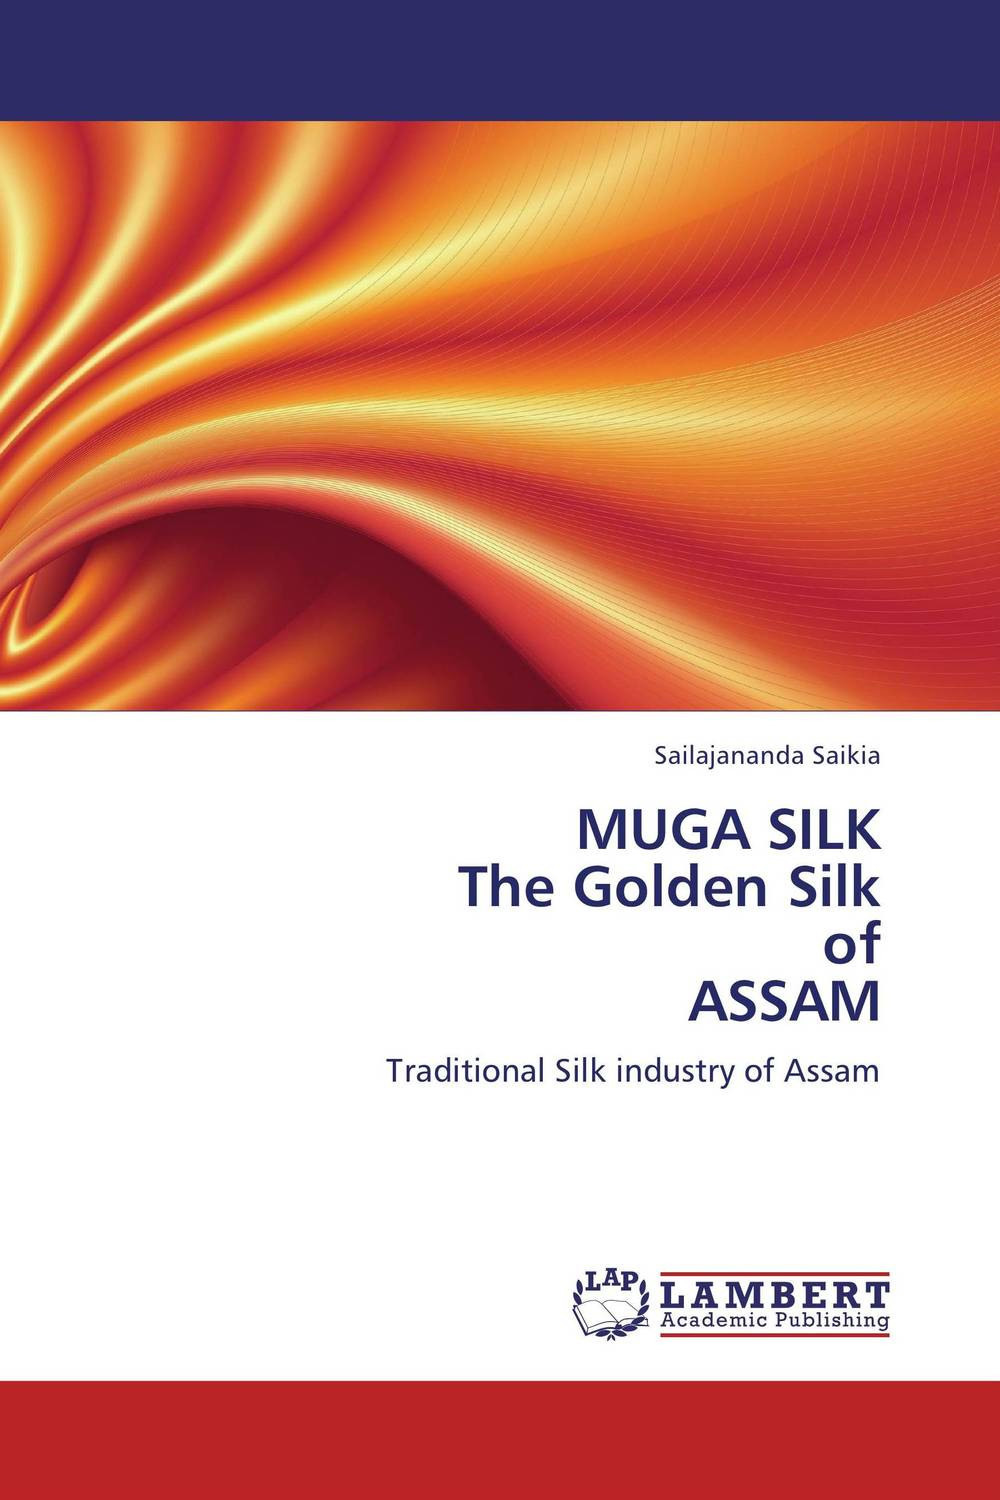 MUGA SILK  The Golden Silk  of  ASSAM korres бальзам стик д губ с экстрактом мандарина тон персик